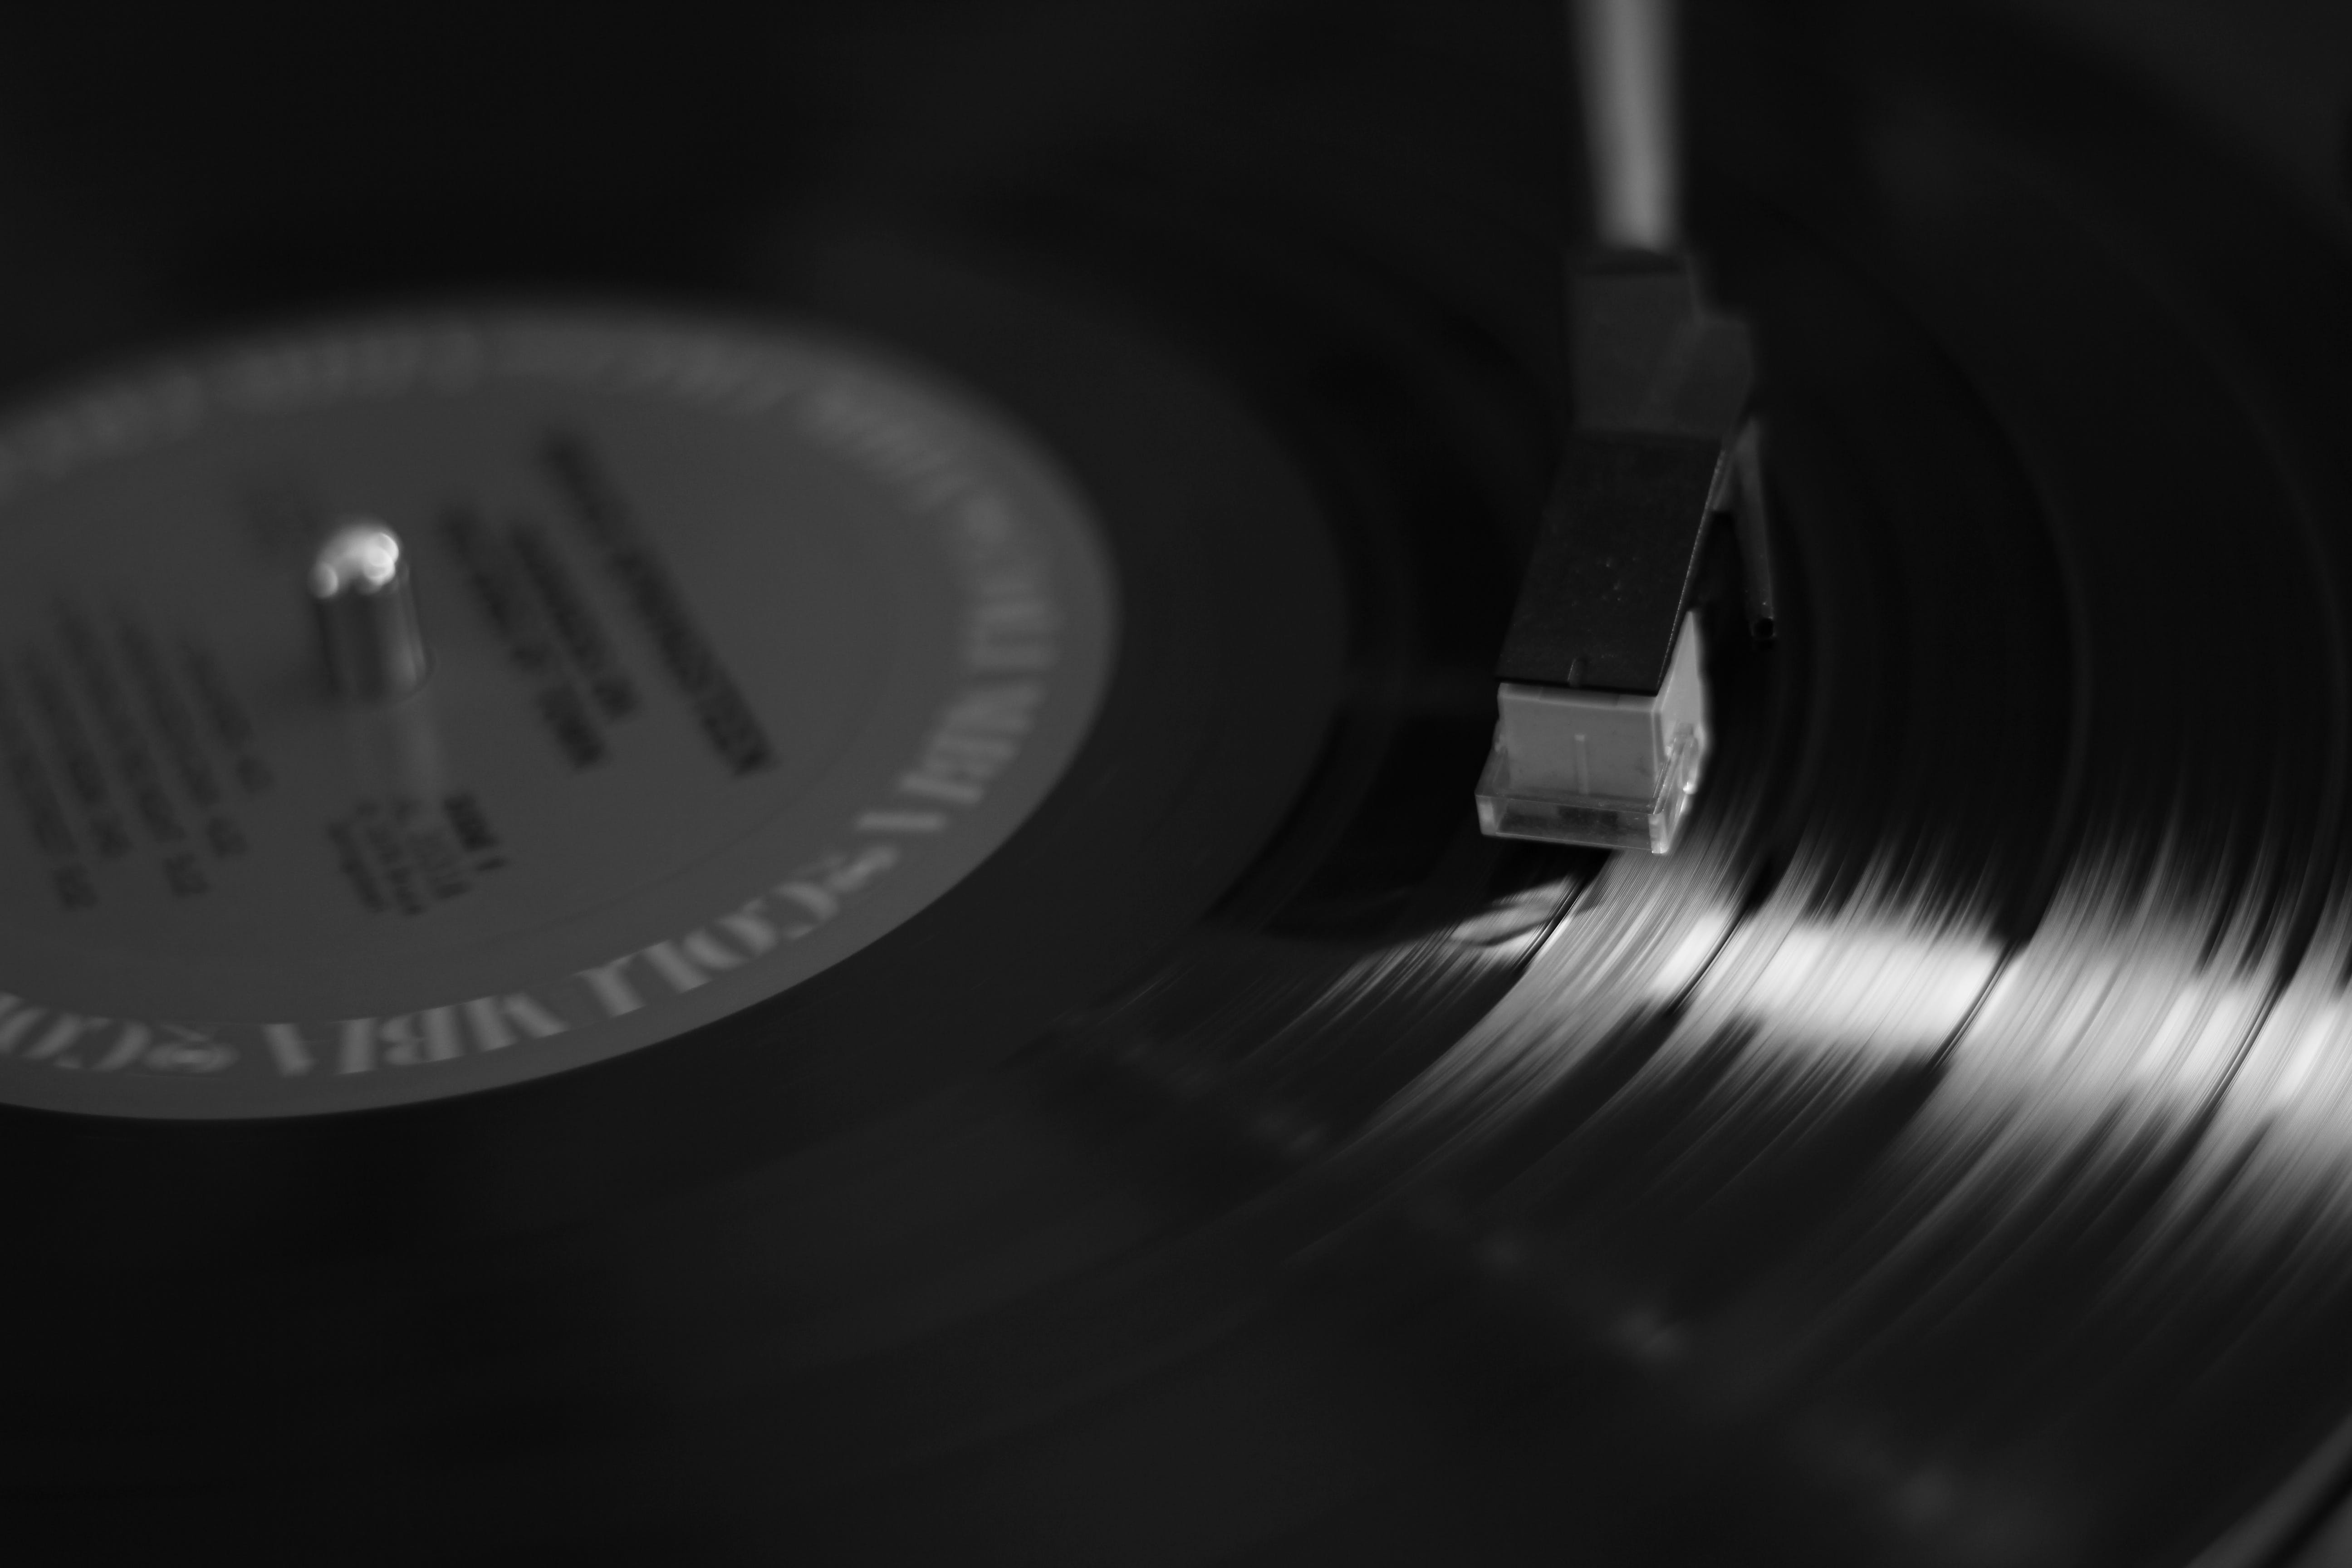 Free stock photo of music, spinning, vinyl, play